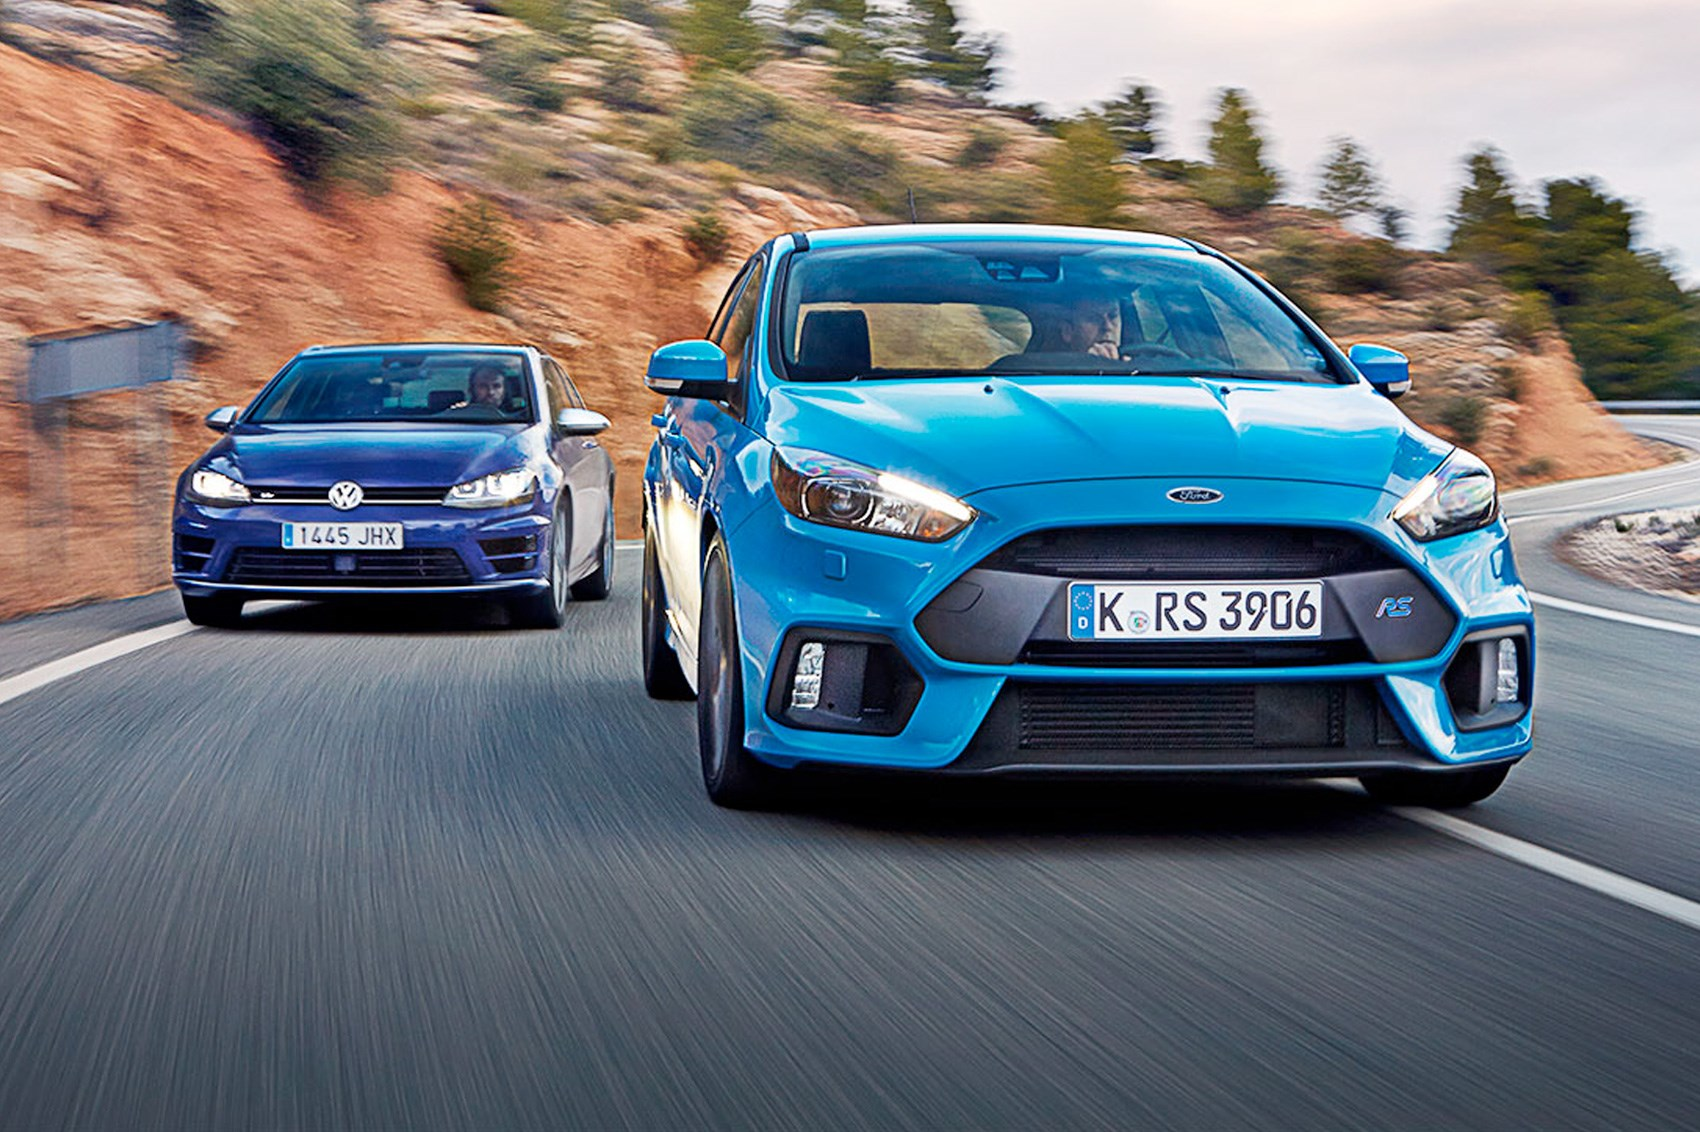 Vw Golf R Vs Ford Focus Rs 2016 S Hot Hatch Crunch Match